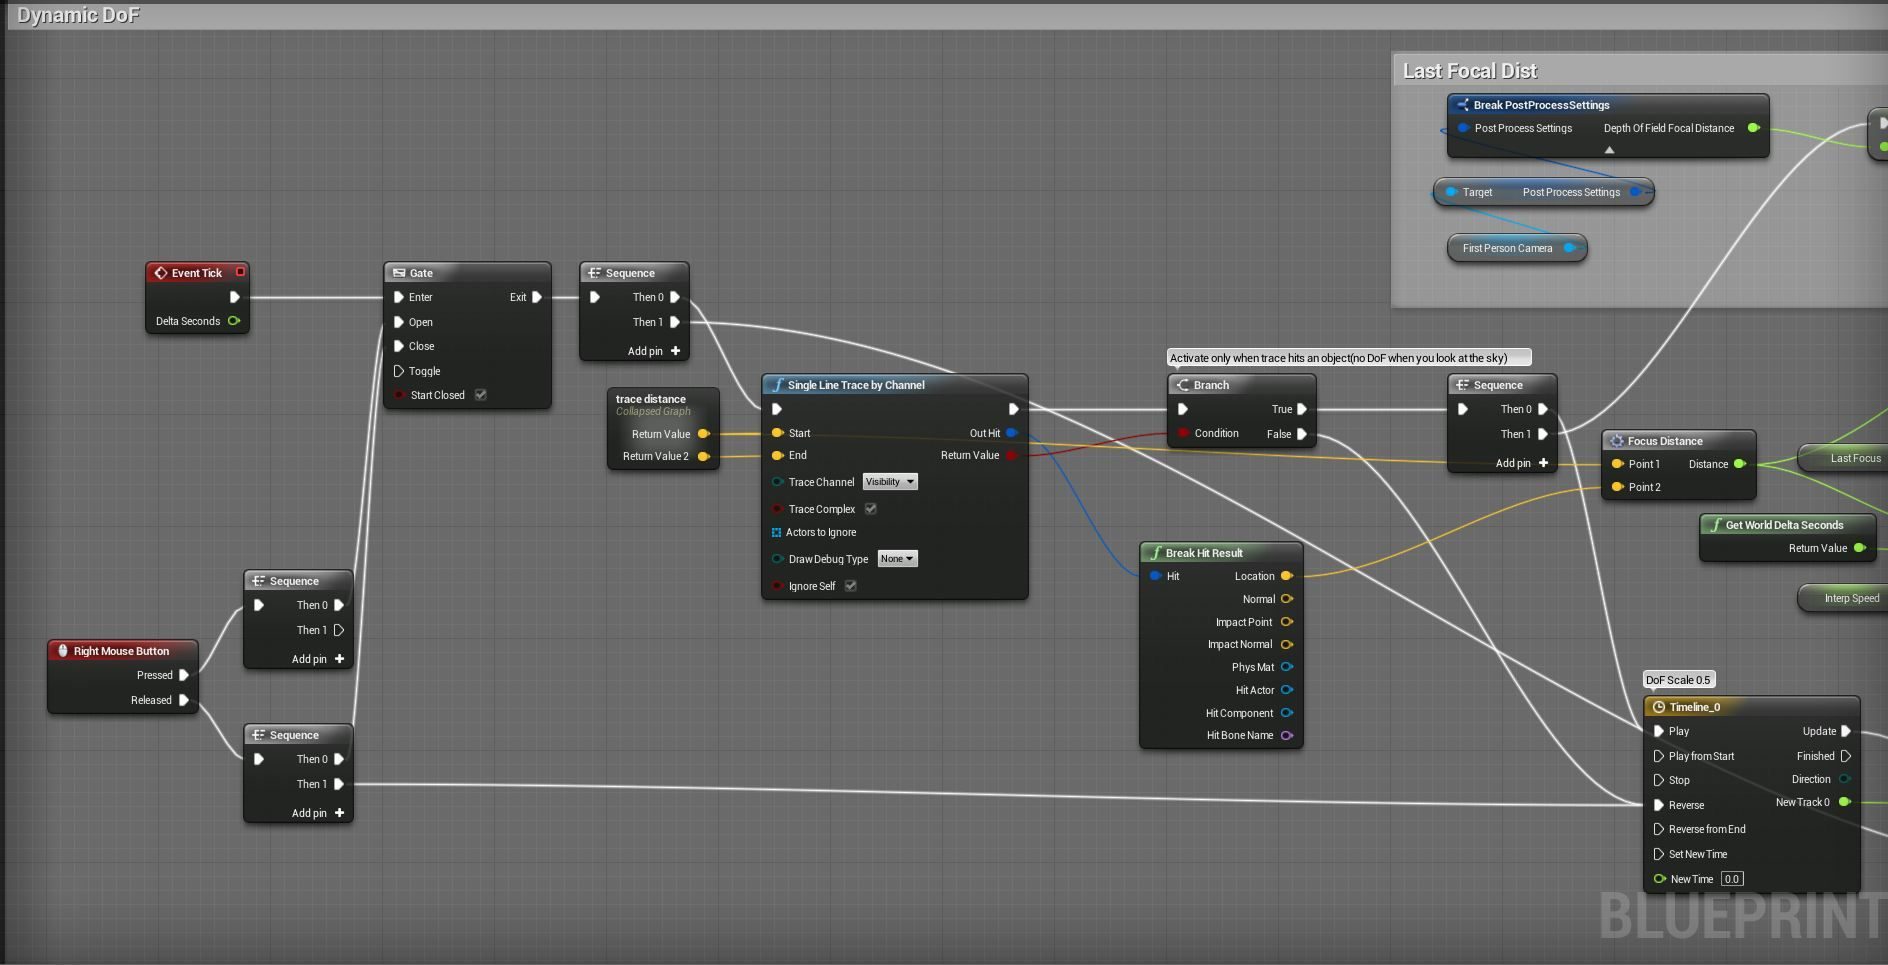 Ue4 dynamic dofdepth of field blueprint 4 6 forums ue4 dynamic dofdepth of field blueprint 4 6 malvernweather Choice Image